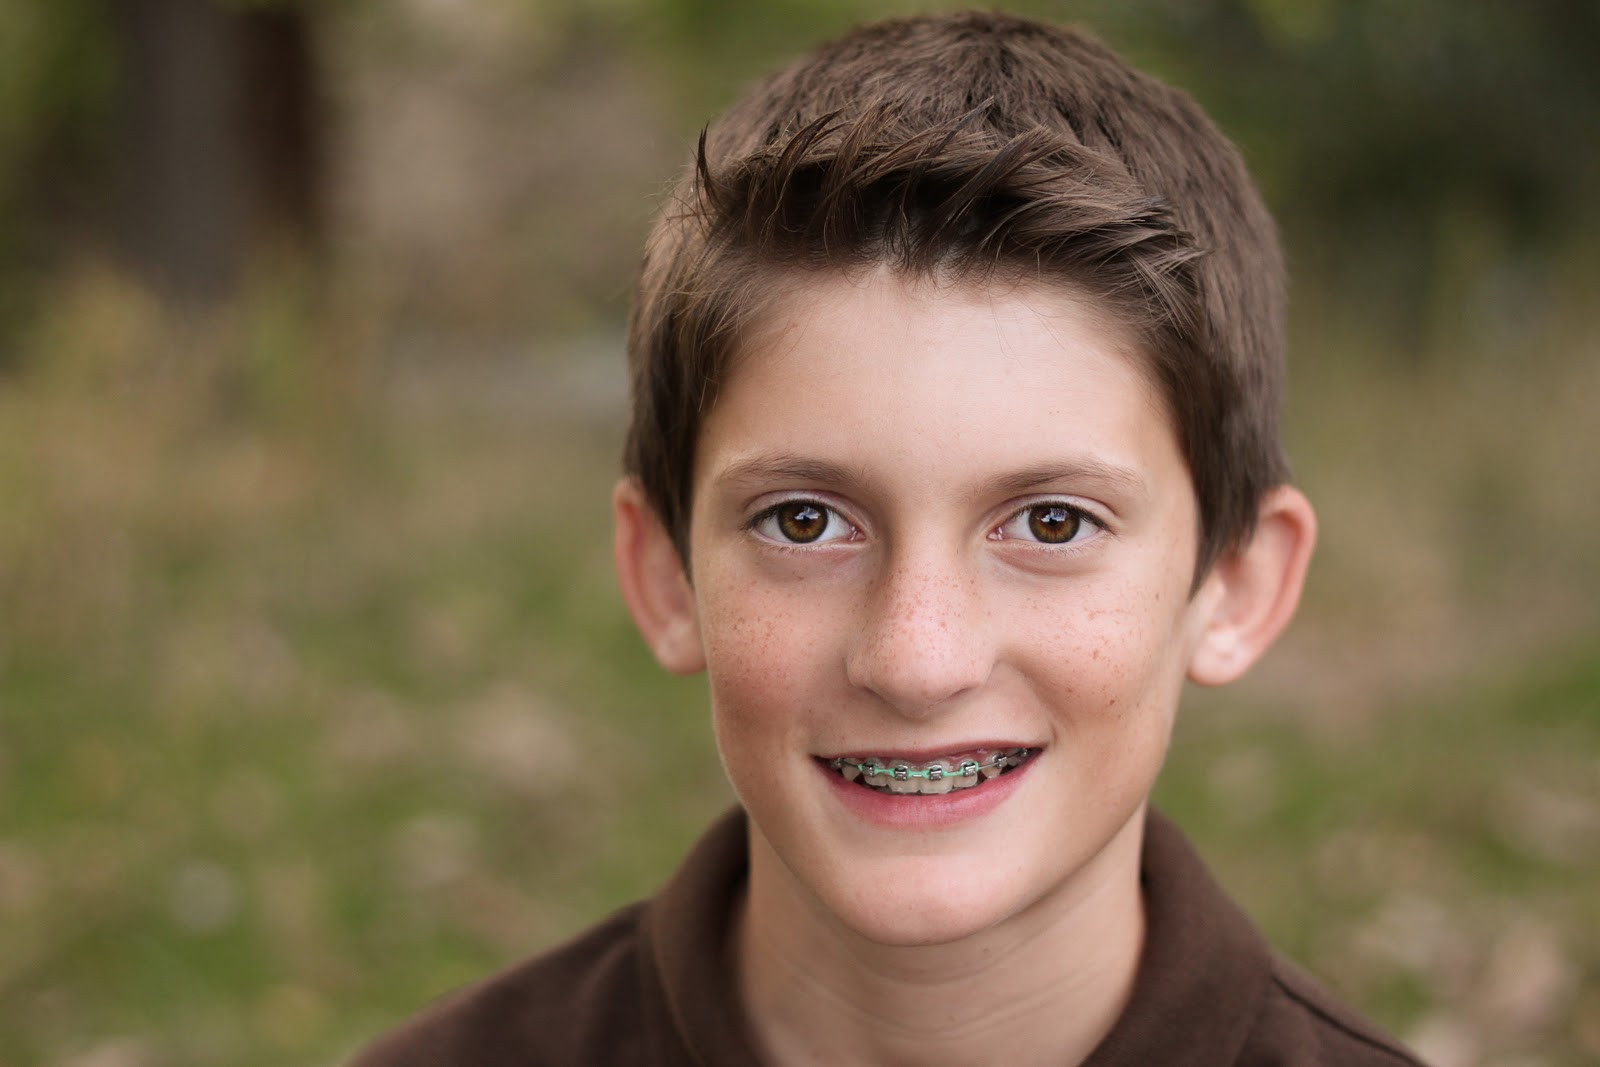 Best ideas about 14 Year Old Boys Haircuts . Save or Pin The Seal Bark Another teenager in the house Now.